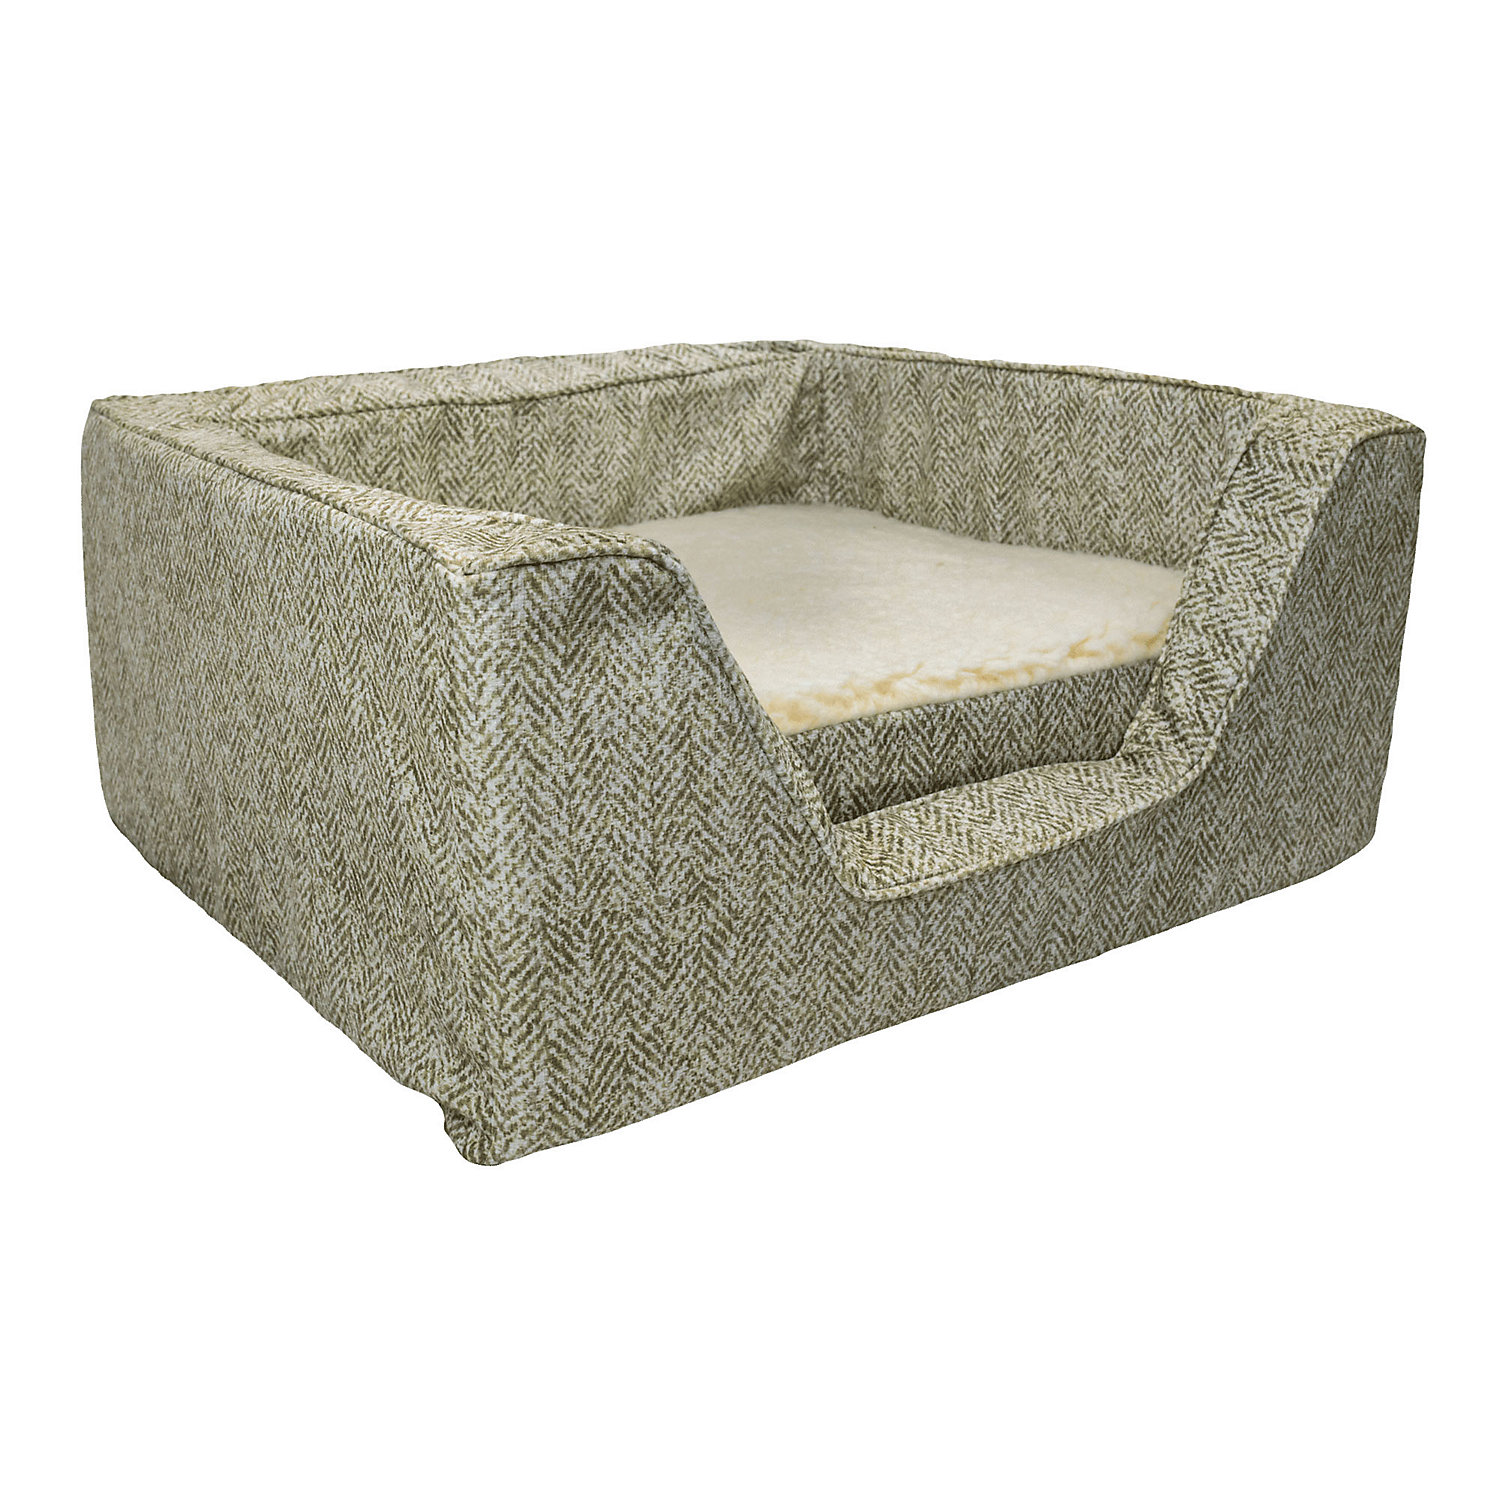 Snoozer Premium Micro Suede Square Palmer Citron With Memory Foam Dog Bed 27 L X 23 W Large